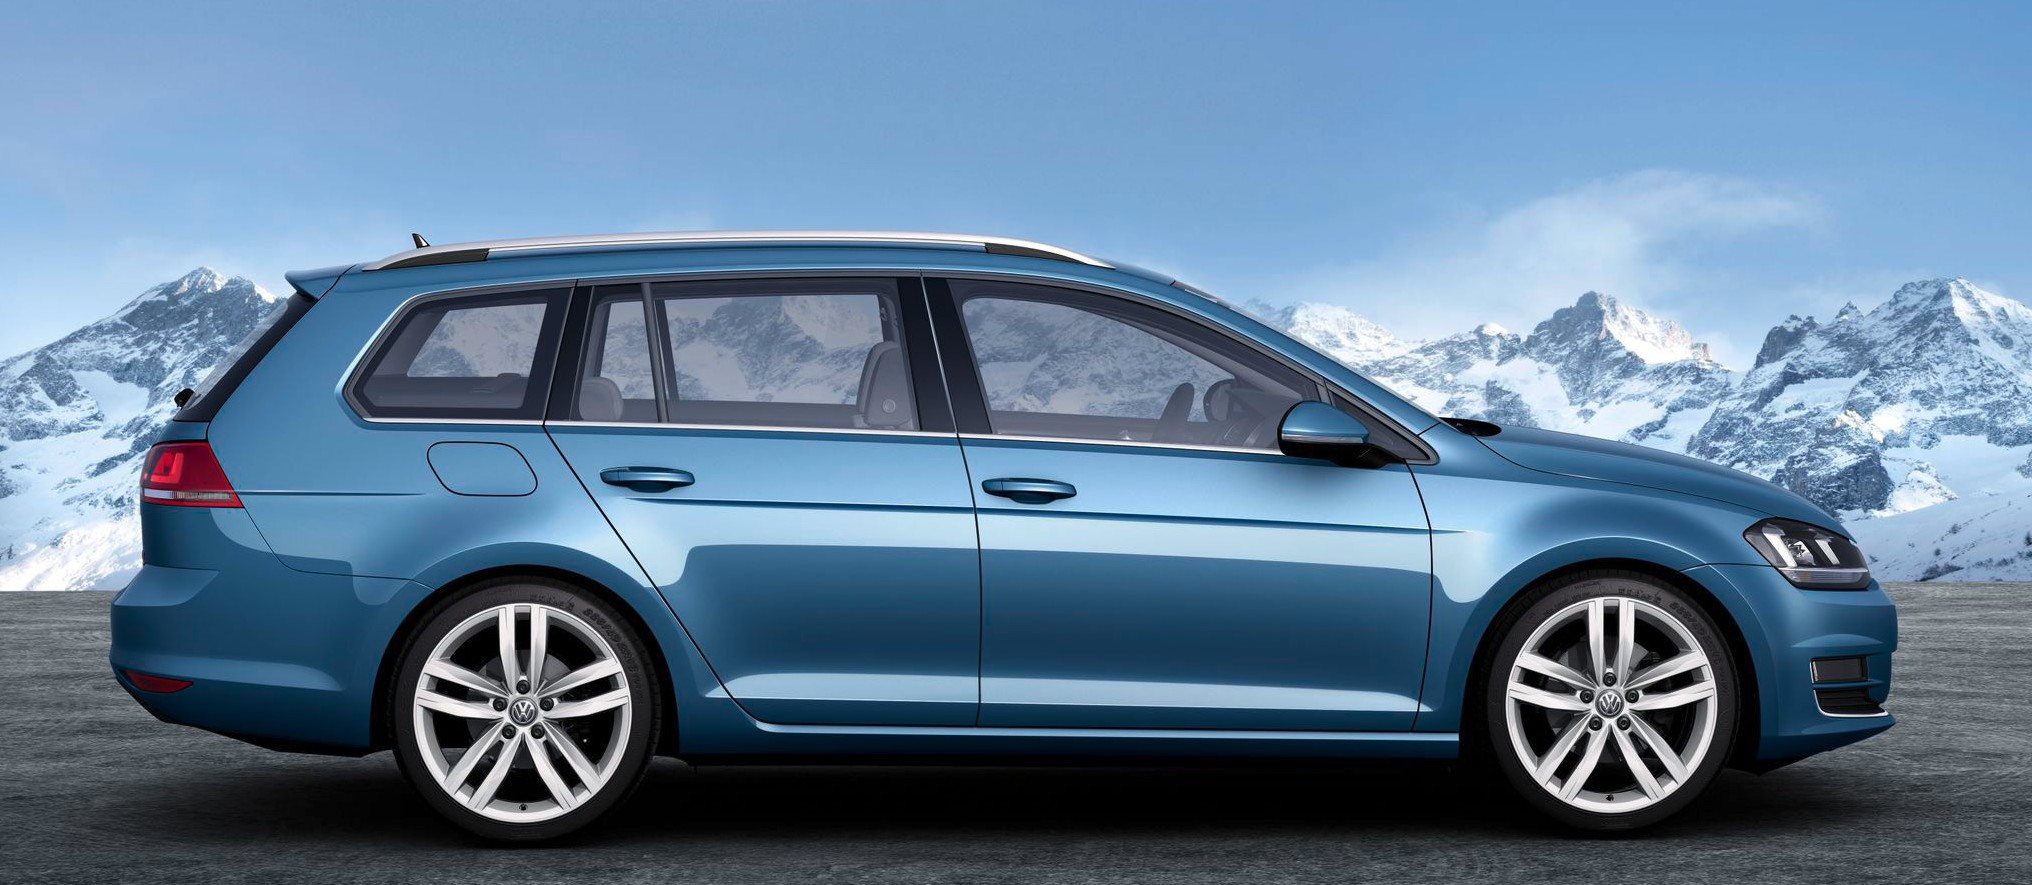 volkswagen-golf-wagon-016